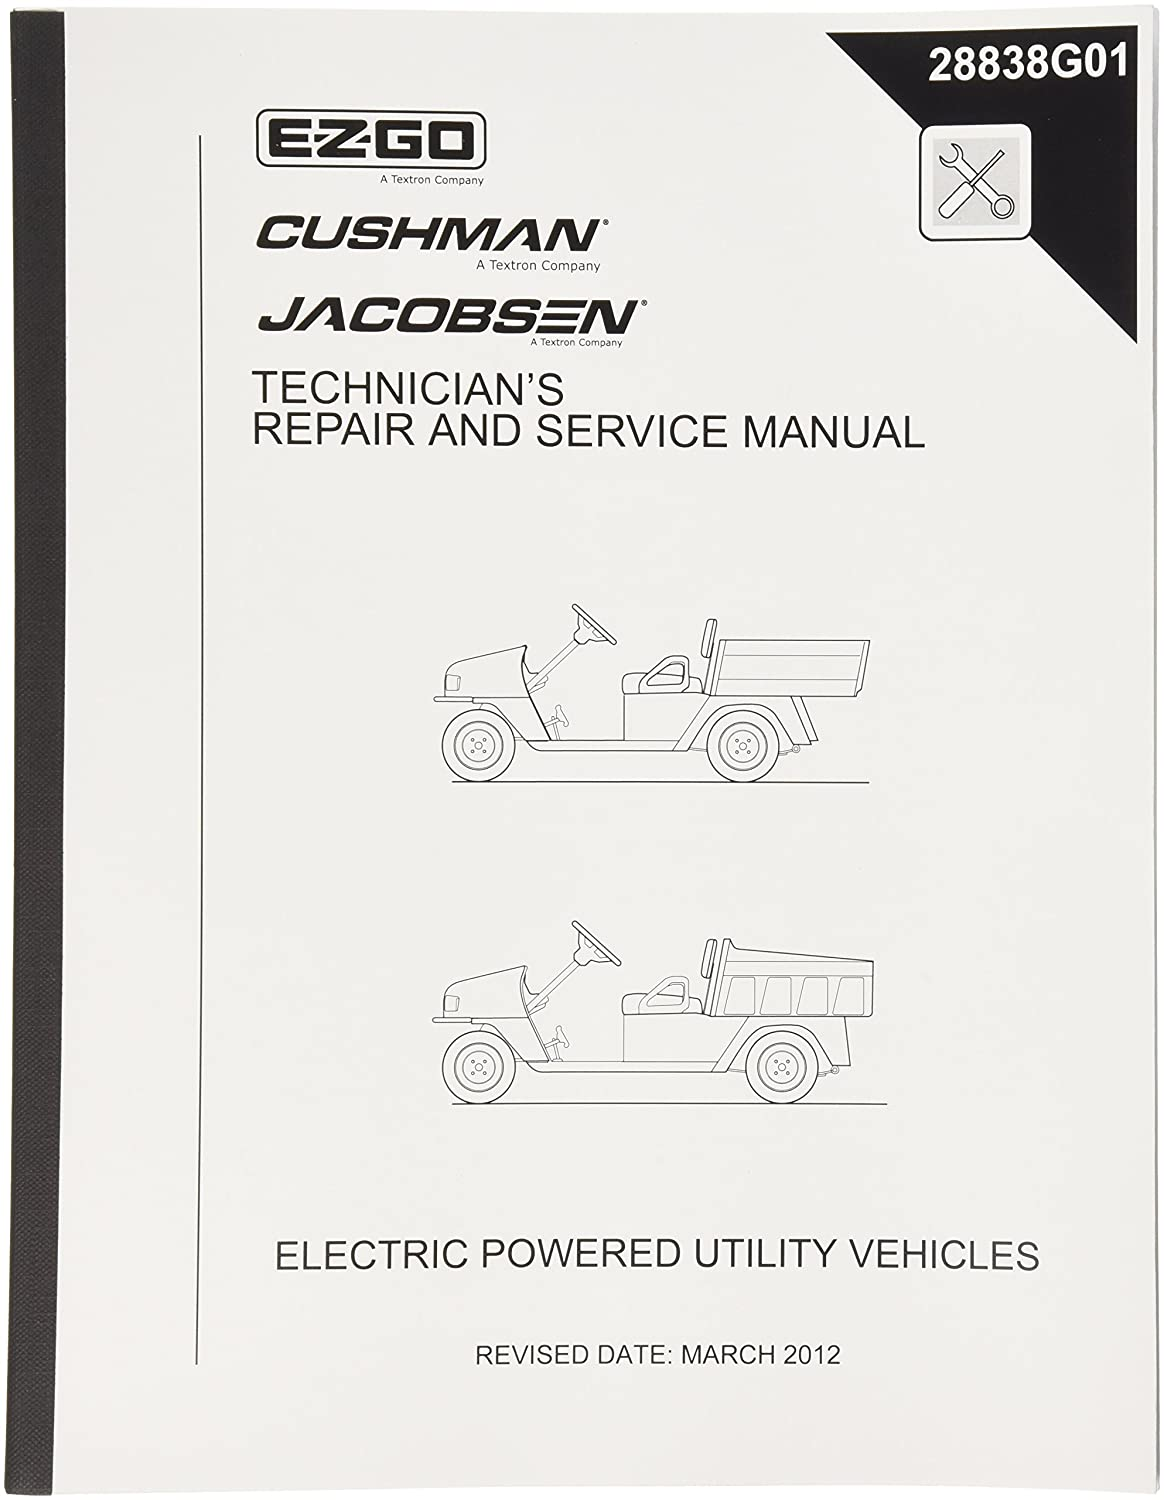 Amazon.com : EZGO 28838G01 2004-2008 Technician's Repair and Service Manual  for Electric MPT, Industrial, Hauler and Commander : Outdoor Decorative  Fences ...